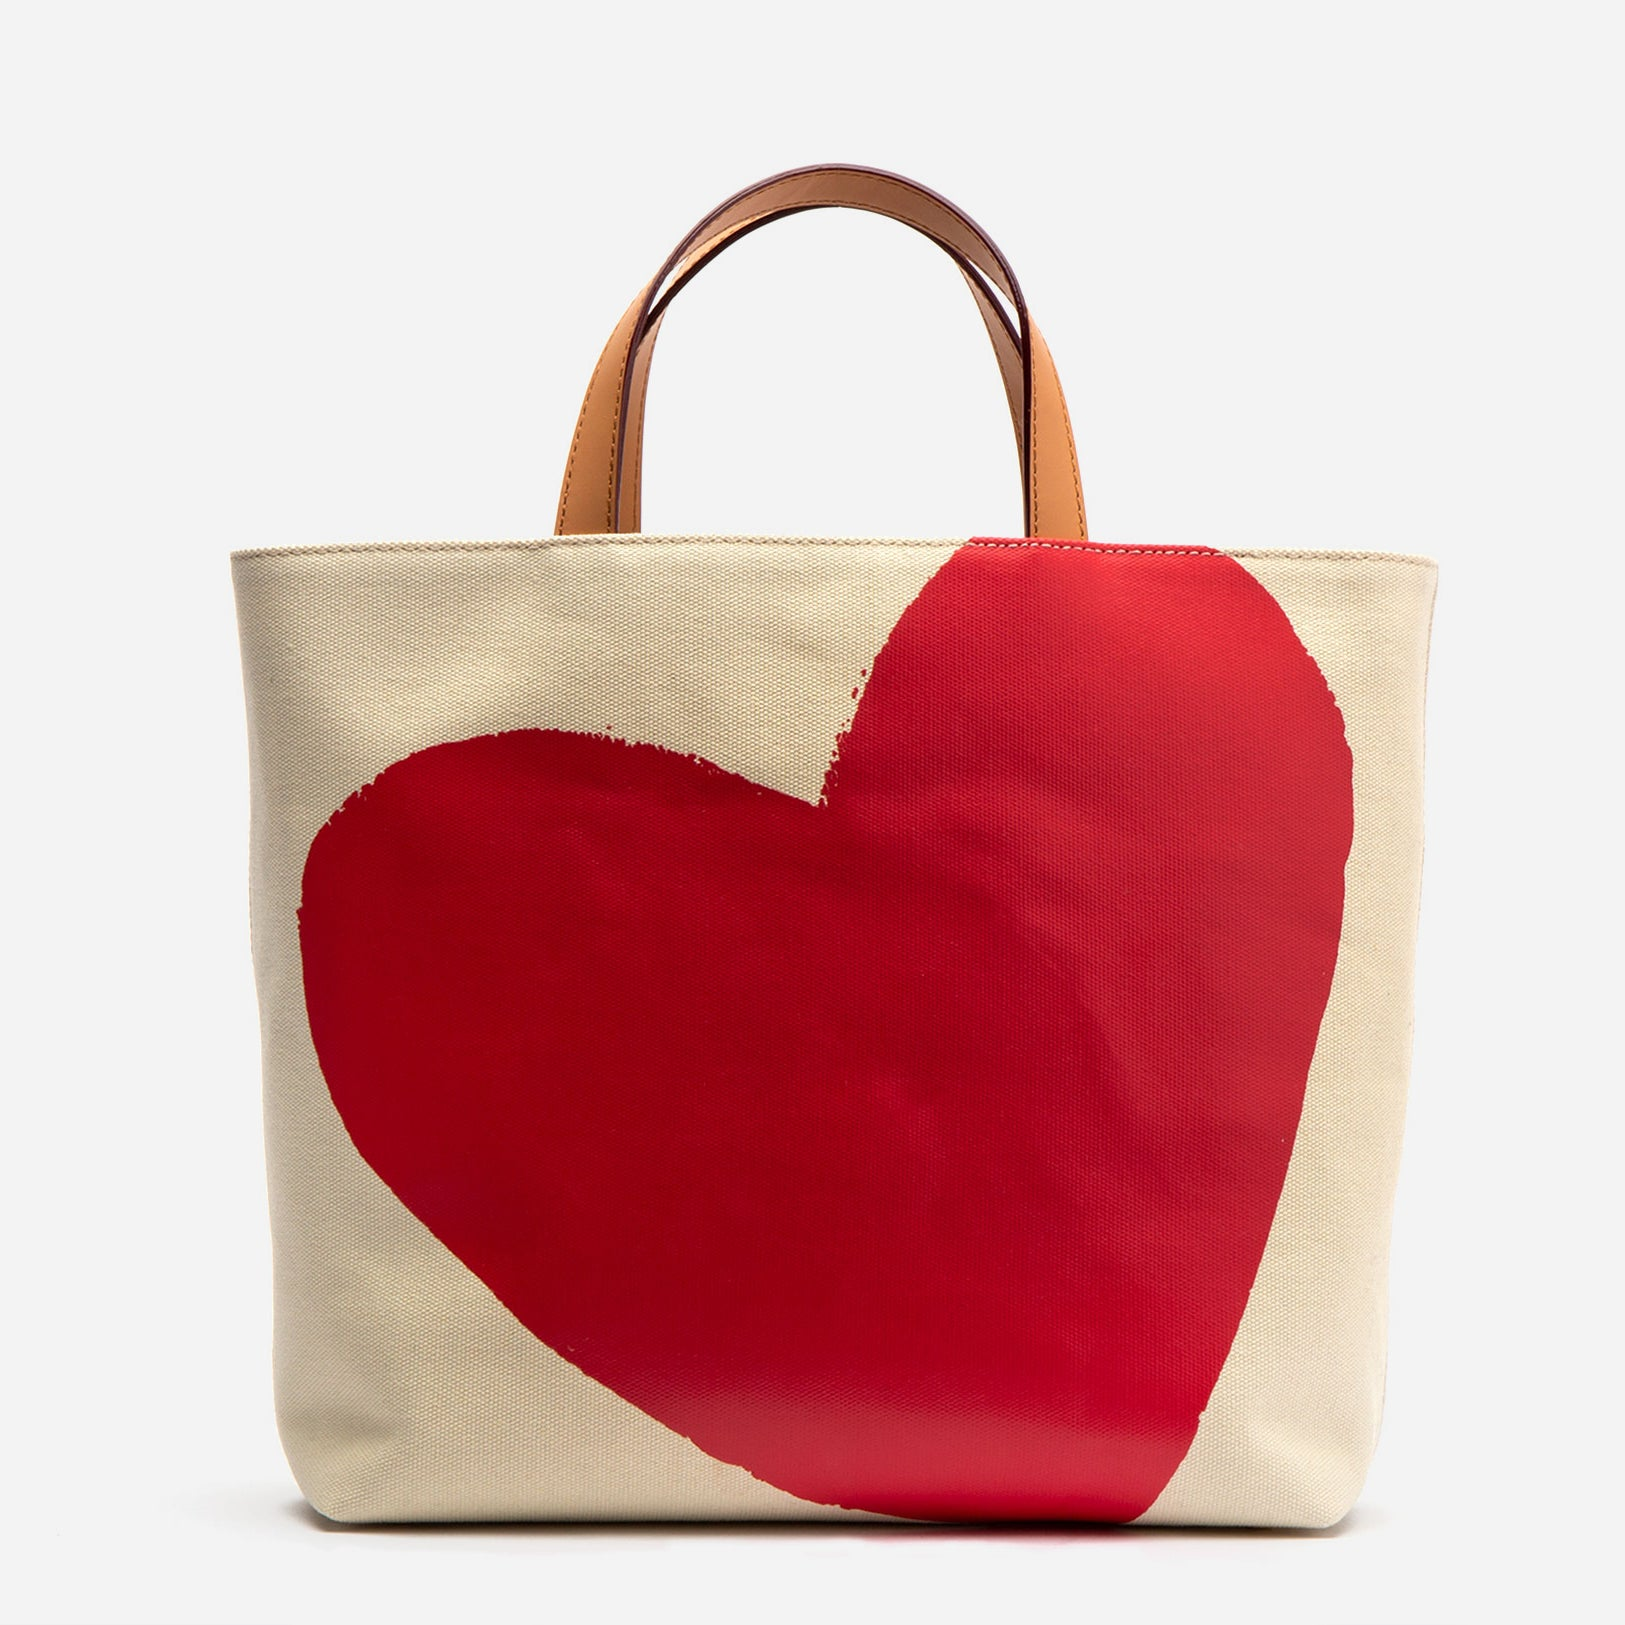 Large Margaret canvas bag with vachetta leather trim. Heart illustration by Margaret Cepis. Shop Frances Valentine.